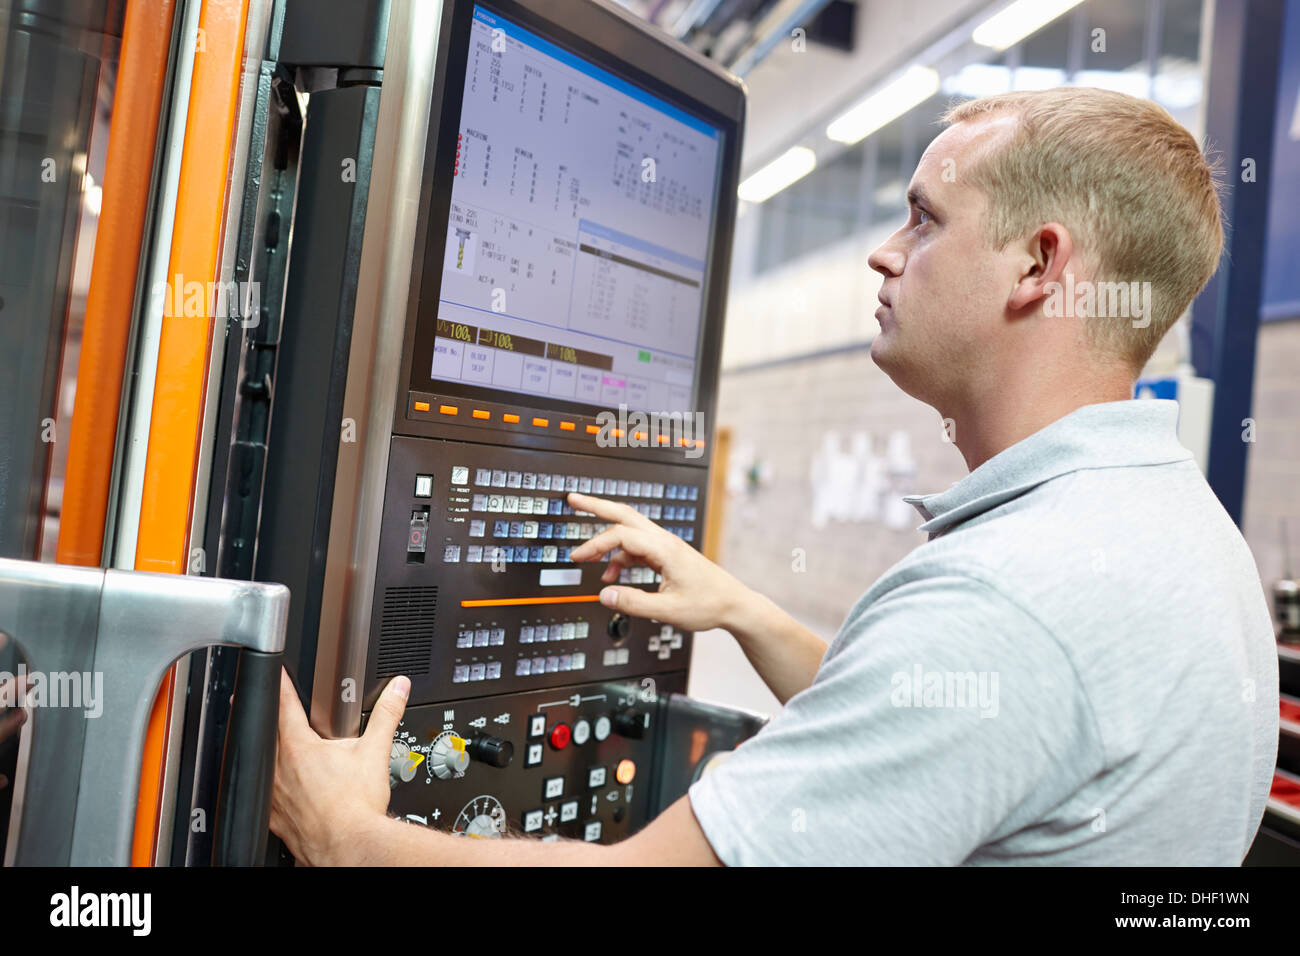 Worker looking at computer monitor in engineering factory - Stock Image